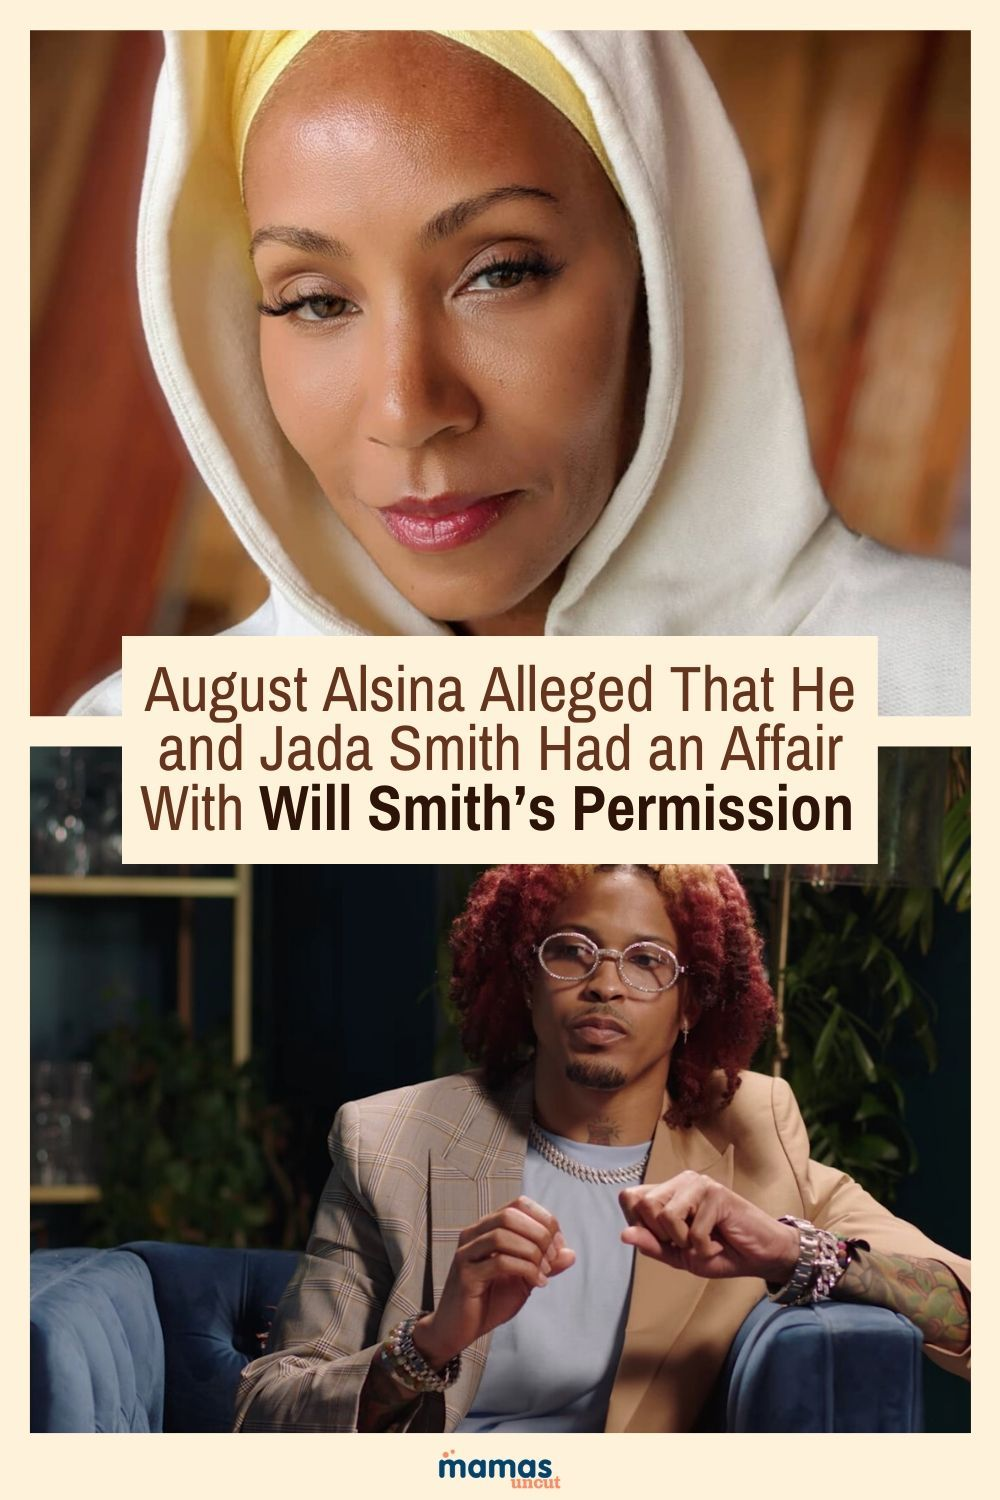 August Alsina Claims He and Jada Pinkett Smith Had Affair  R&B singer August Alsina is speaking out about his alleged affair with Jada Pinkett Smith, saying that he had Will Smith's permission.  #willsmith #jadapinkettsmith #Augustalsina